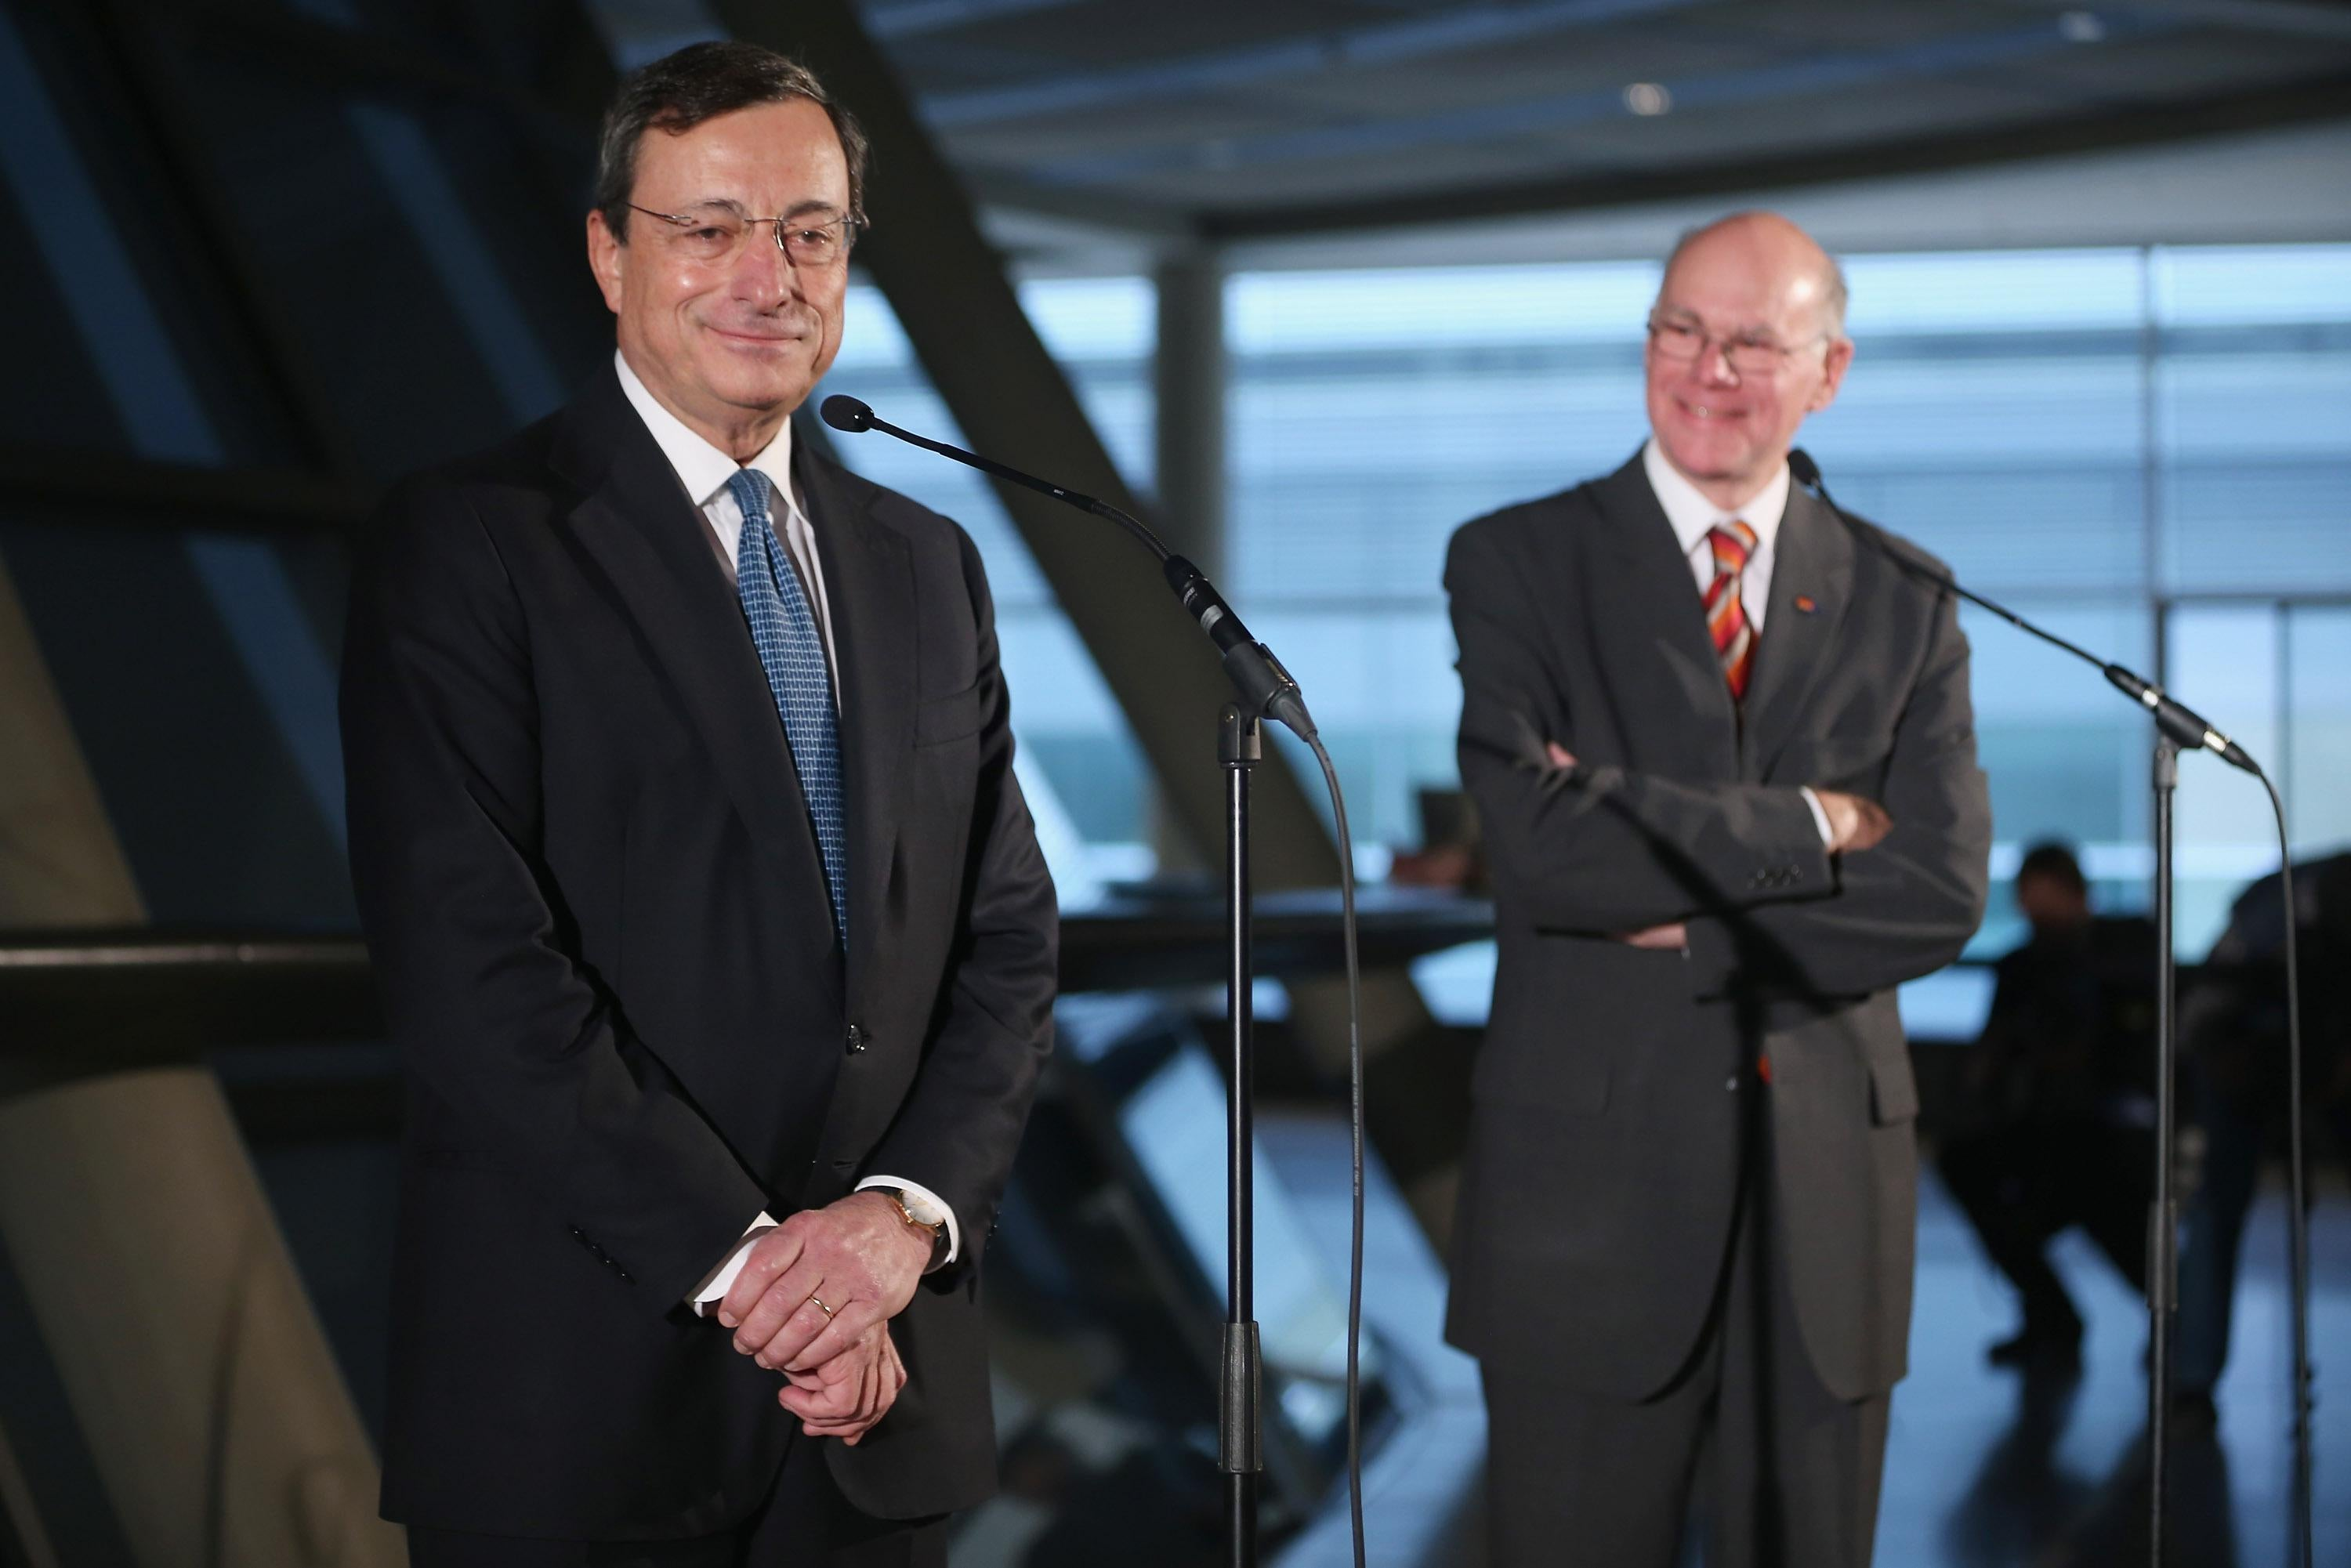 Mario Draghi, president of the European Central Bank, and Bundestag President Norbert Lammert speak to the media at the Bundestag after Draghi spoke to German parliamentarians on Oct. 24, 2012, in Berlin.